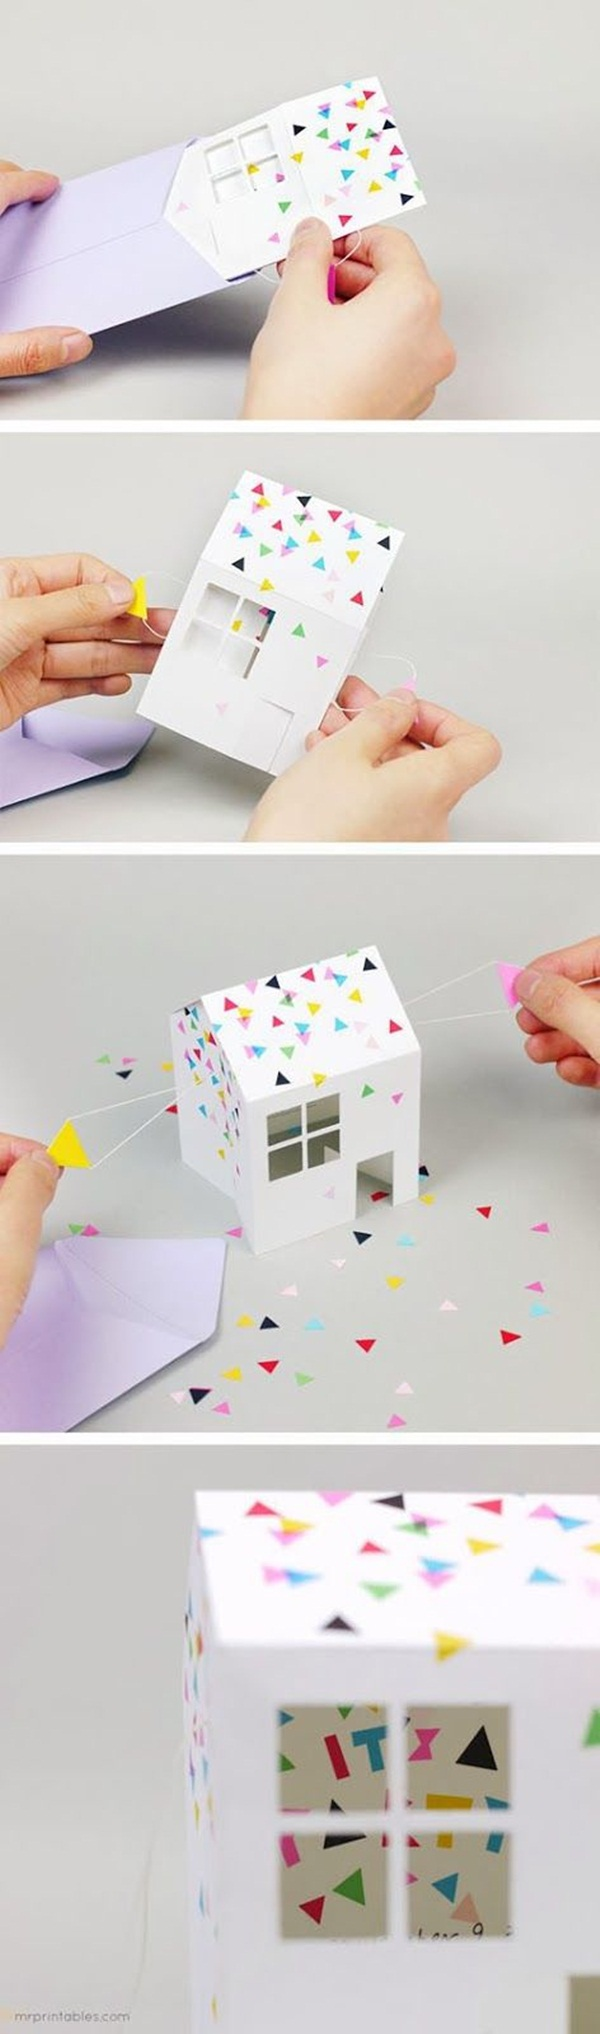 Paper Craft Ideas2